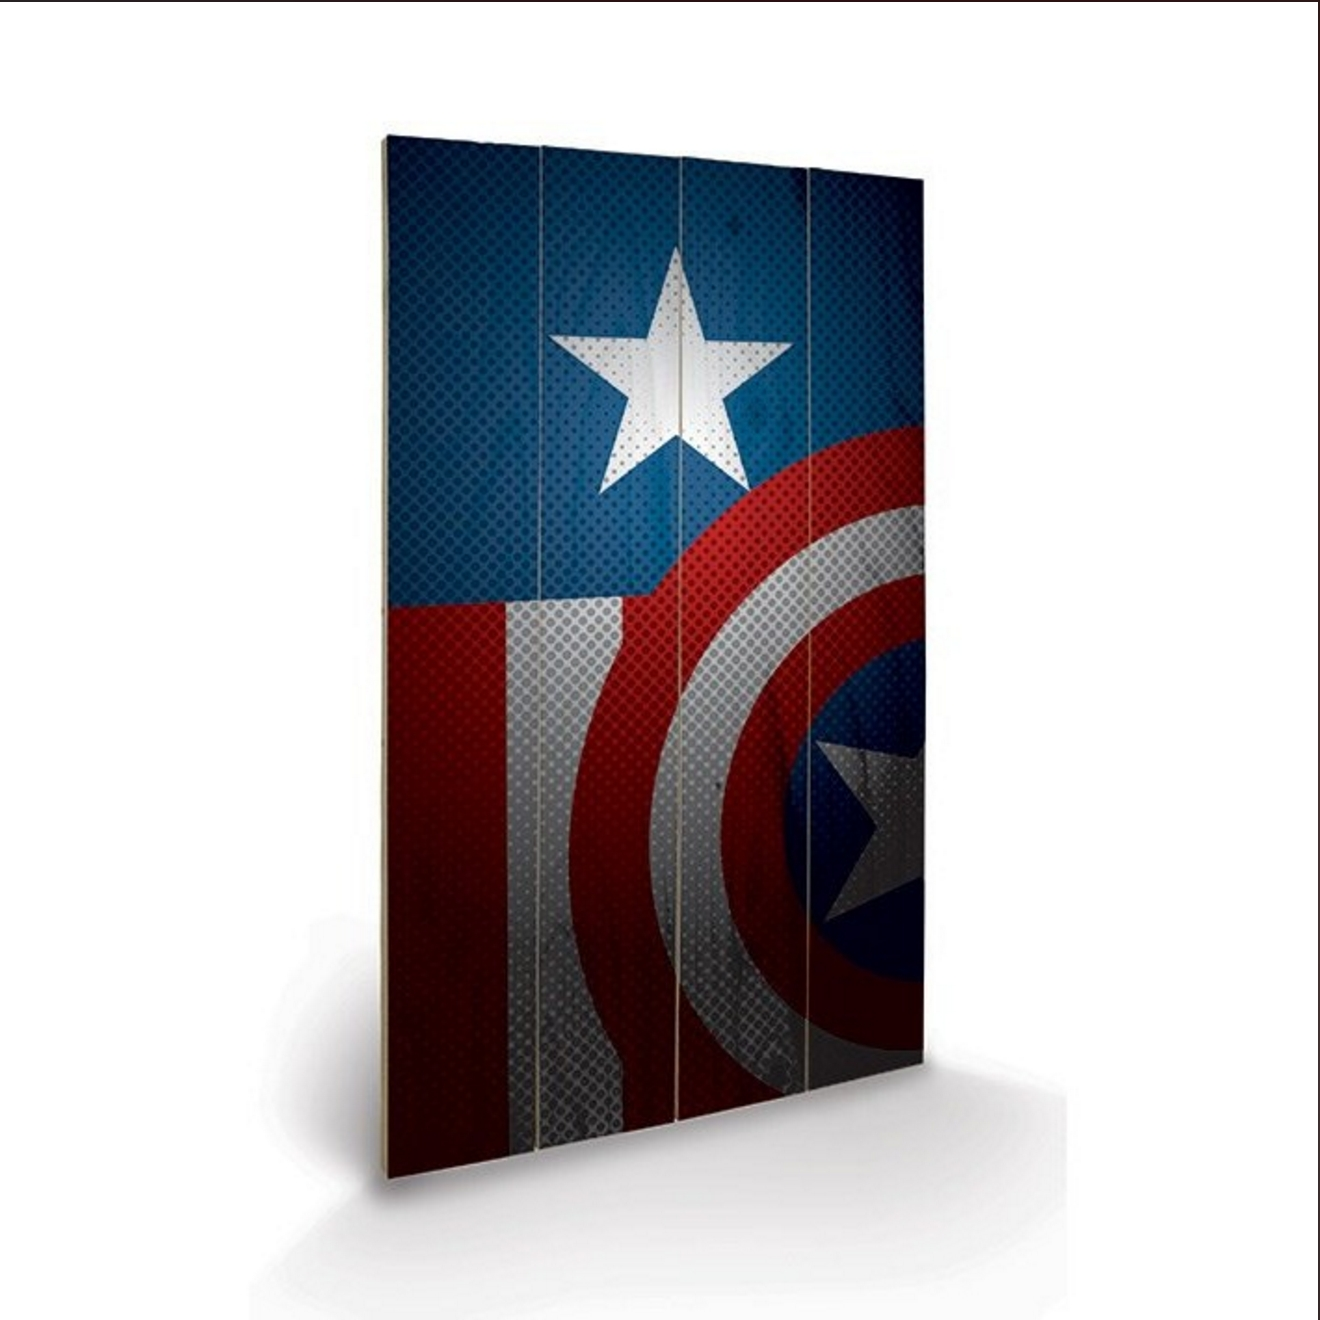 Avengers Assemble Captain America Wooden Wall Art – Spree Within Newest Captain America Wall Art (View 15 of 15)